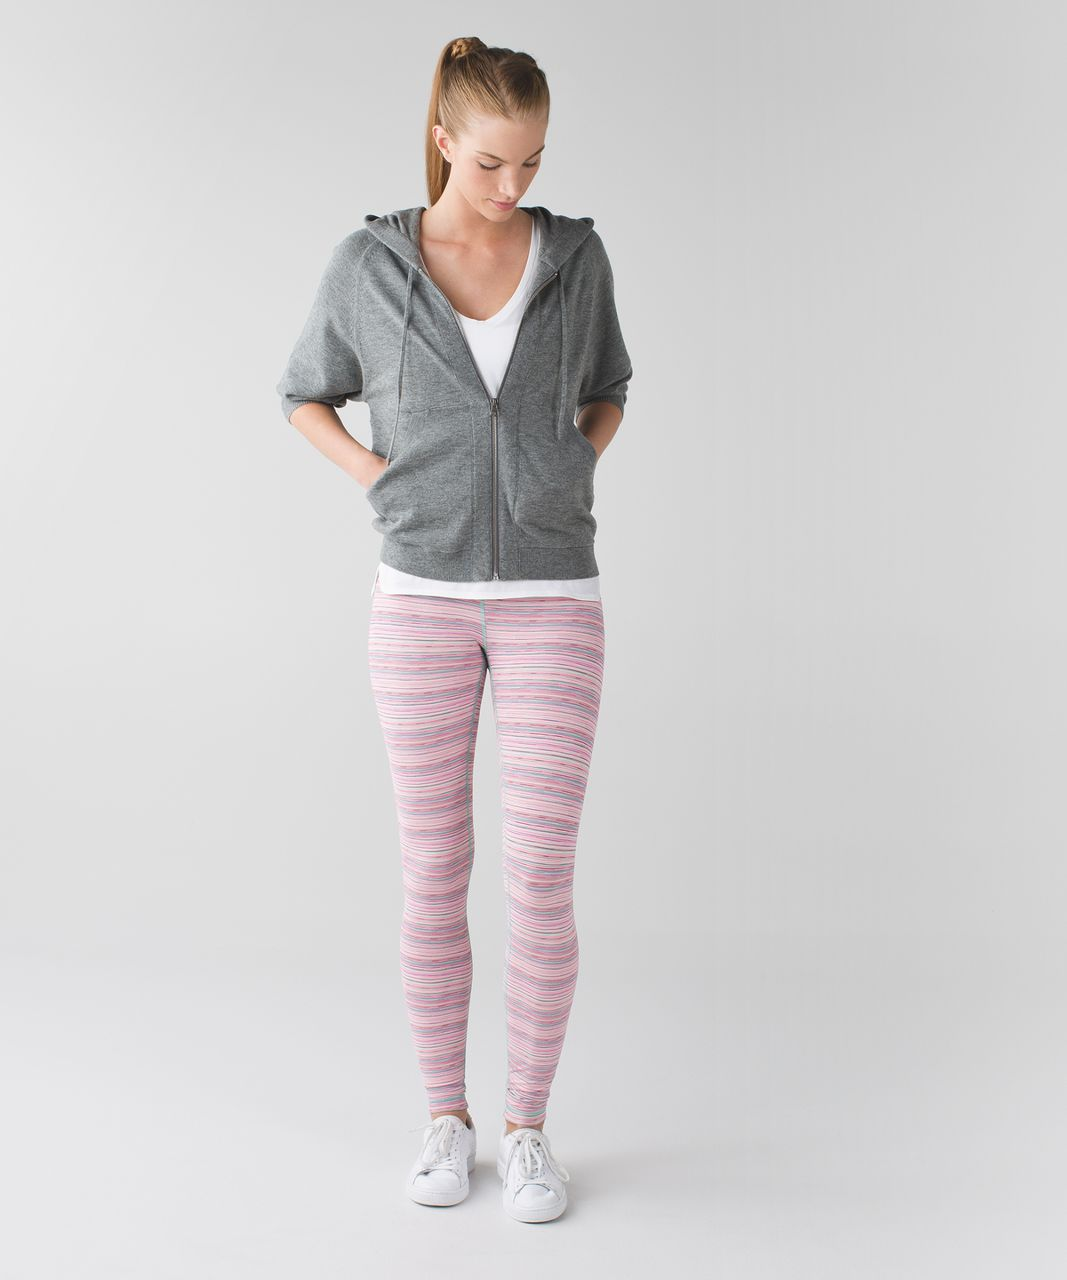 Lululemon Wunder Under Pant III *Luxtreme - Cyber Stripe Flash Light Menthol